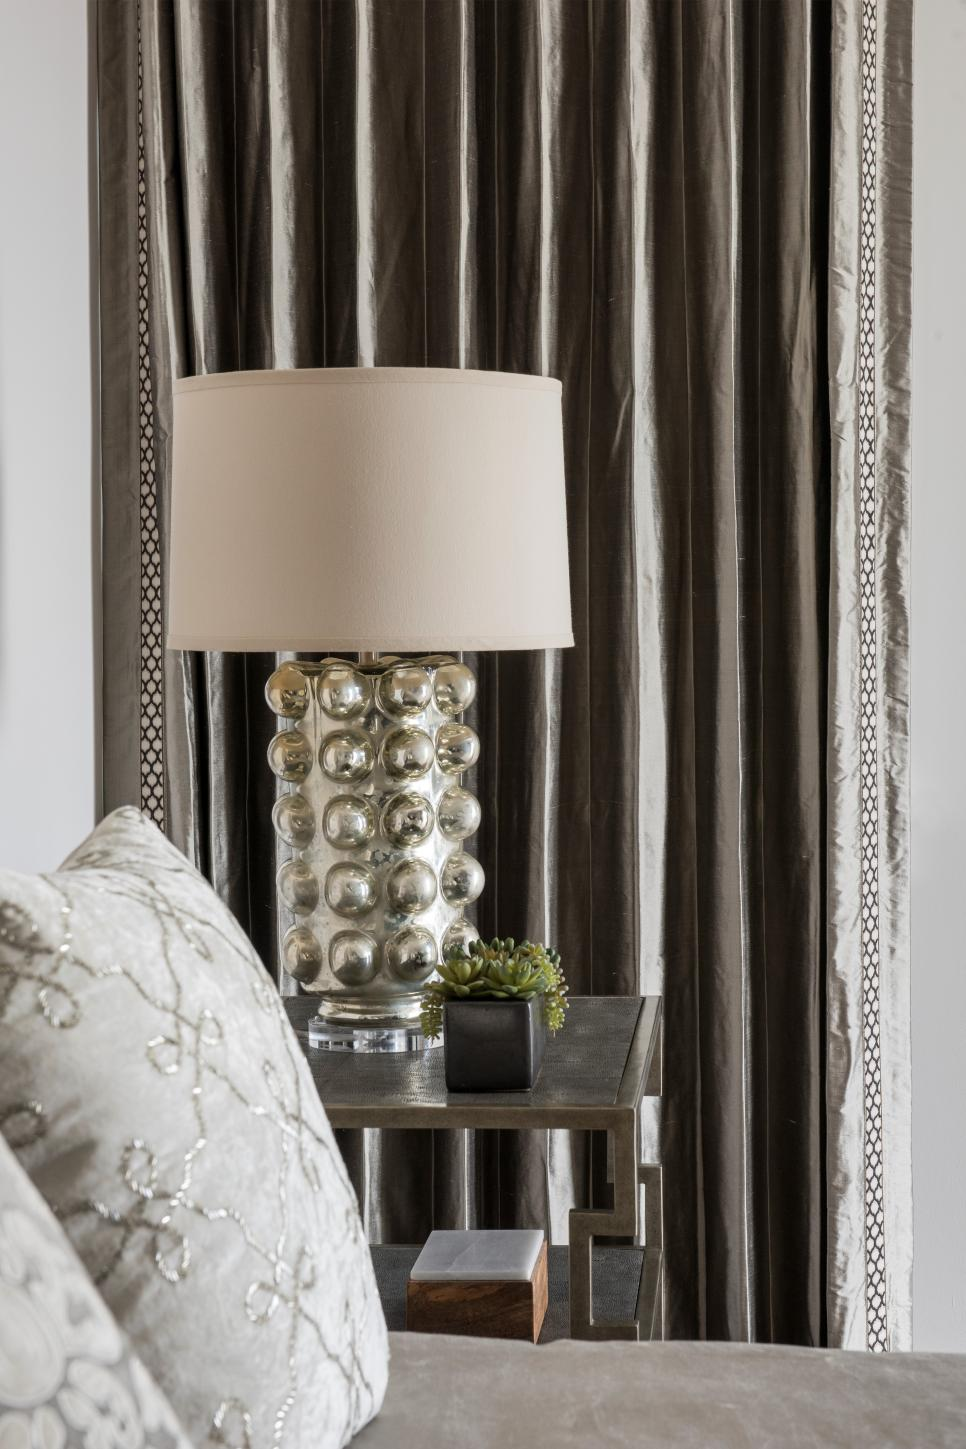 Gray Living Room With Metallic Table Lamp and Satin Curtains